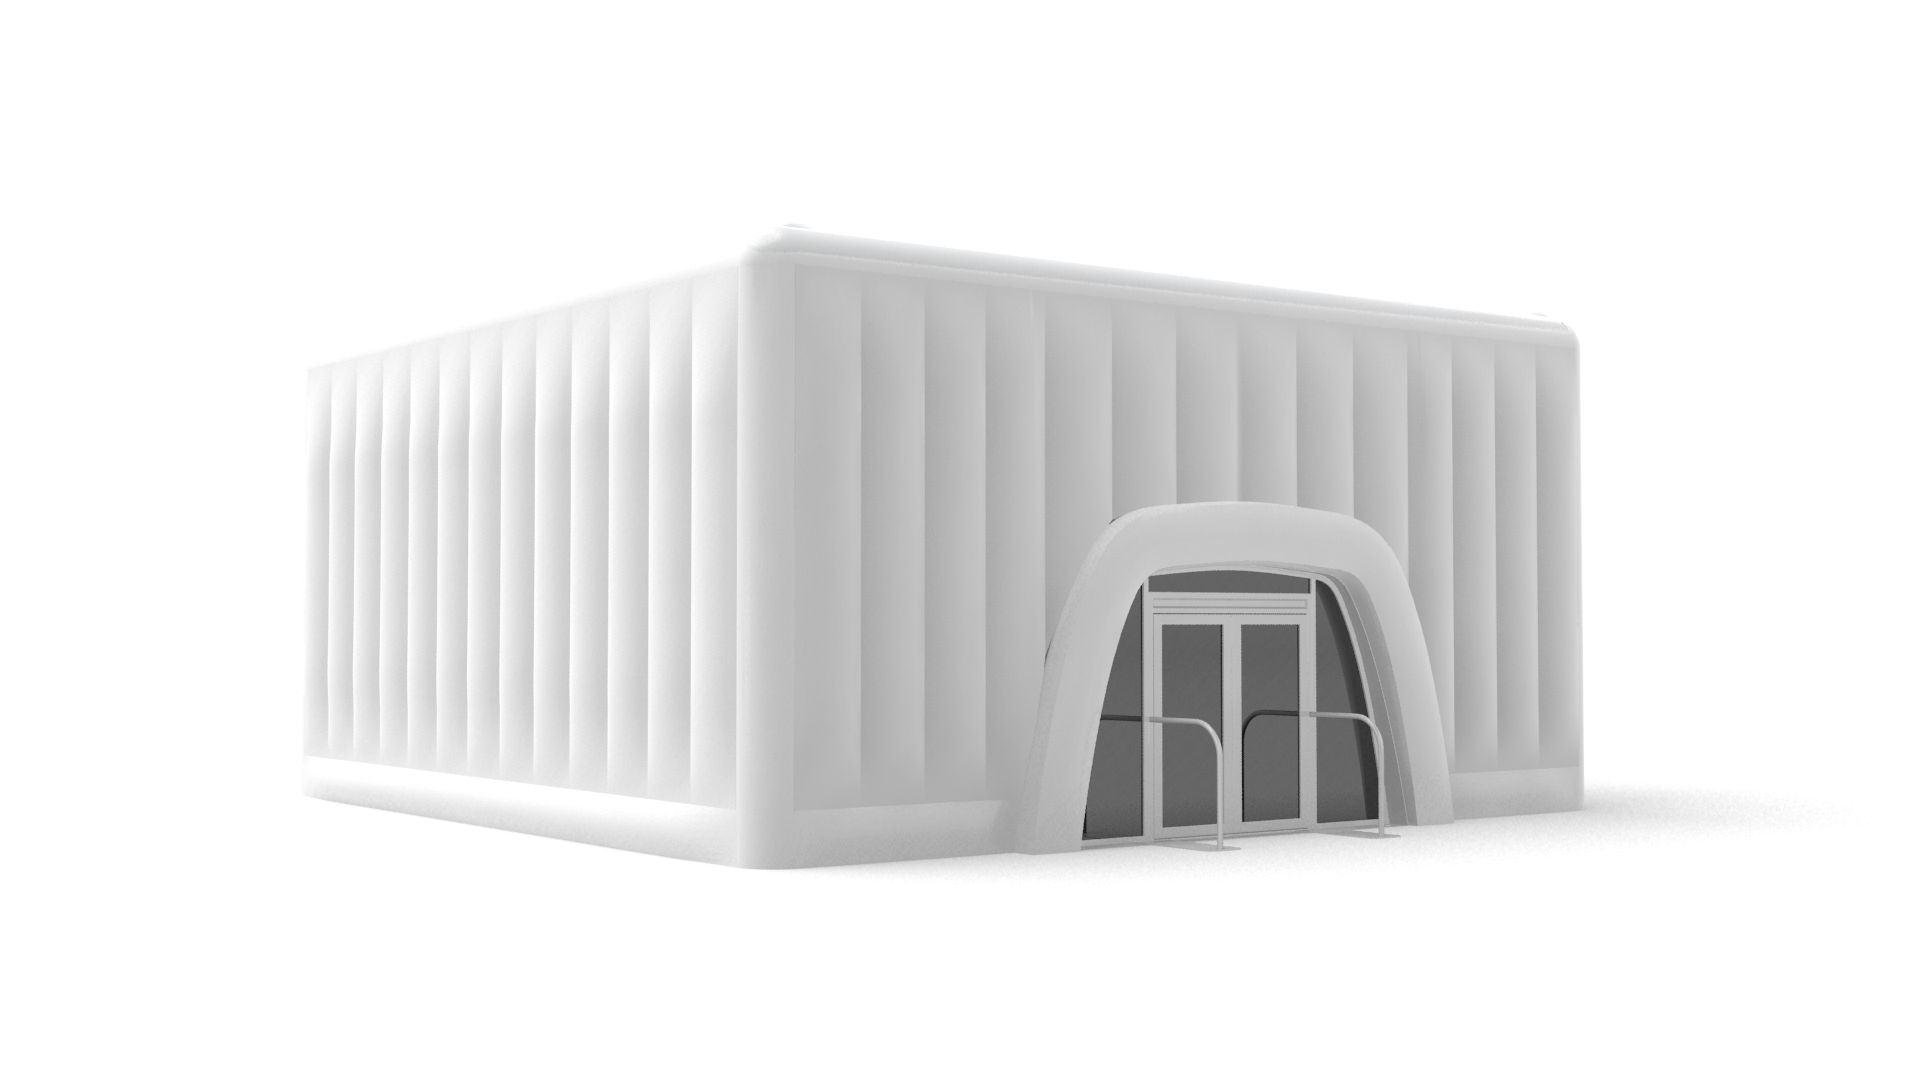 10m Cube - Inflatable Building